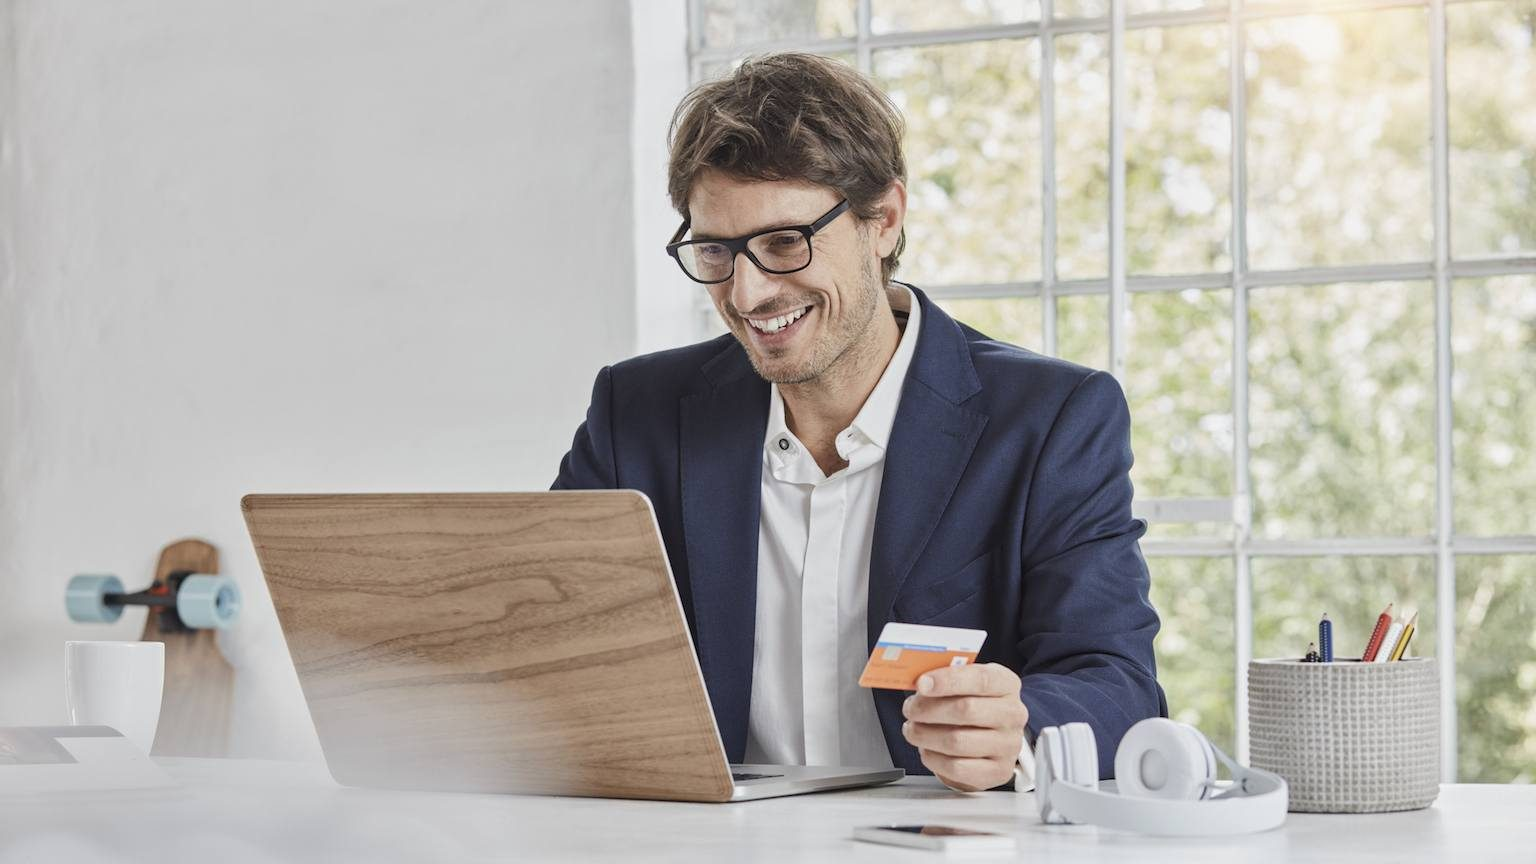 Man holding credit card and looking at laptop in office.